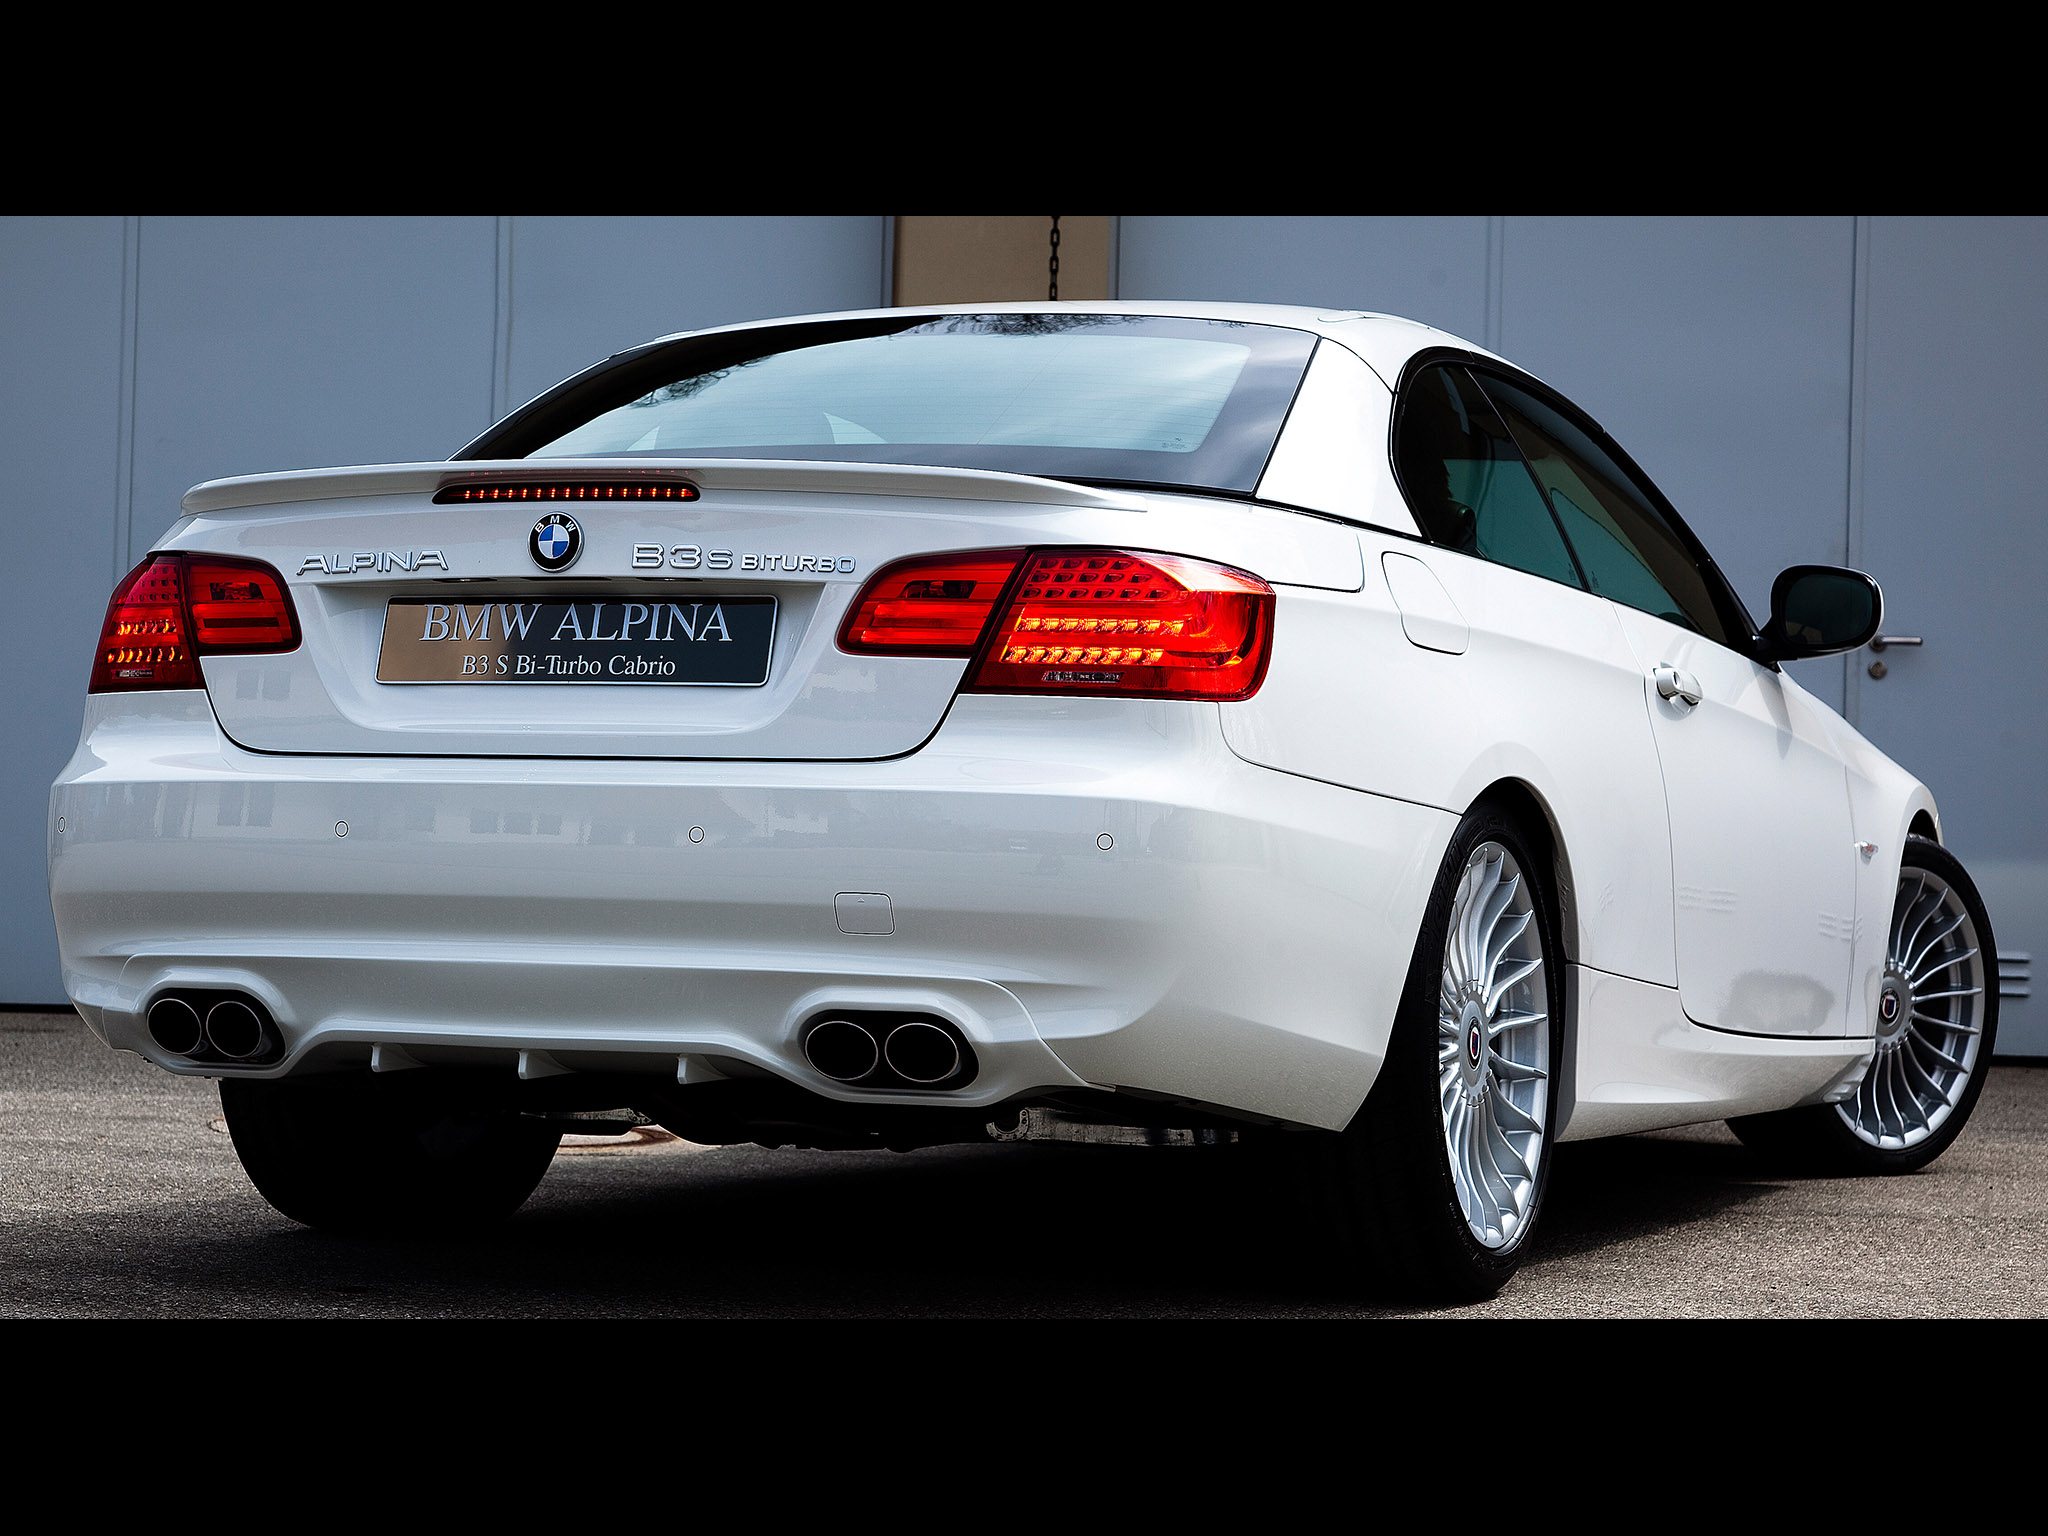 alpina bmw b3 s bi turbo 2010 alpina bmw b3 s bi turbo 2010 photo 04 car in pictures car. Black Bedroom Furniture Sets. Home Design Ideas